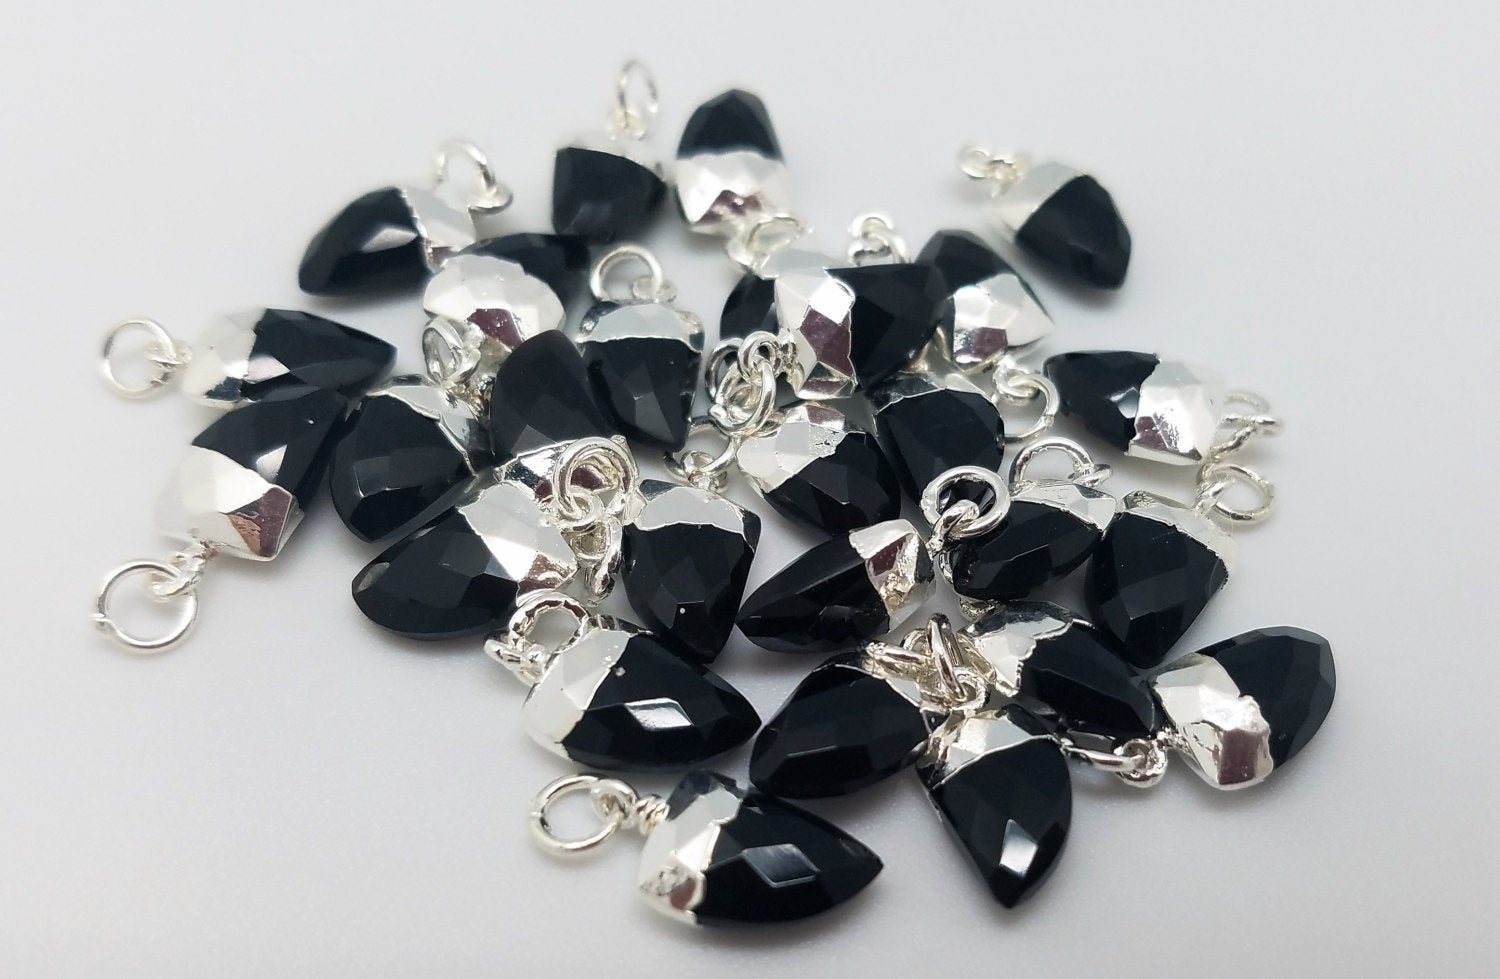 8 x 12mm Black Onyx Horn Pendants w/Silver Plating